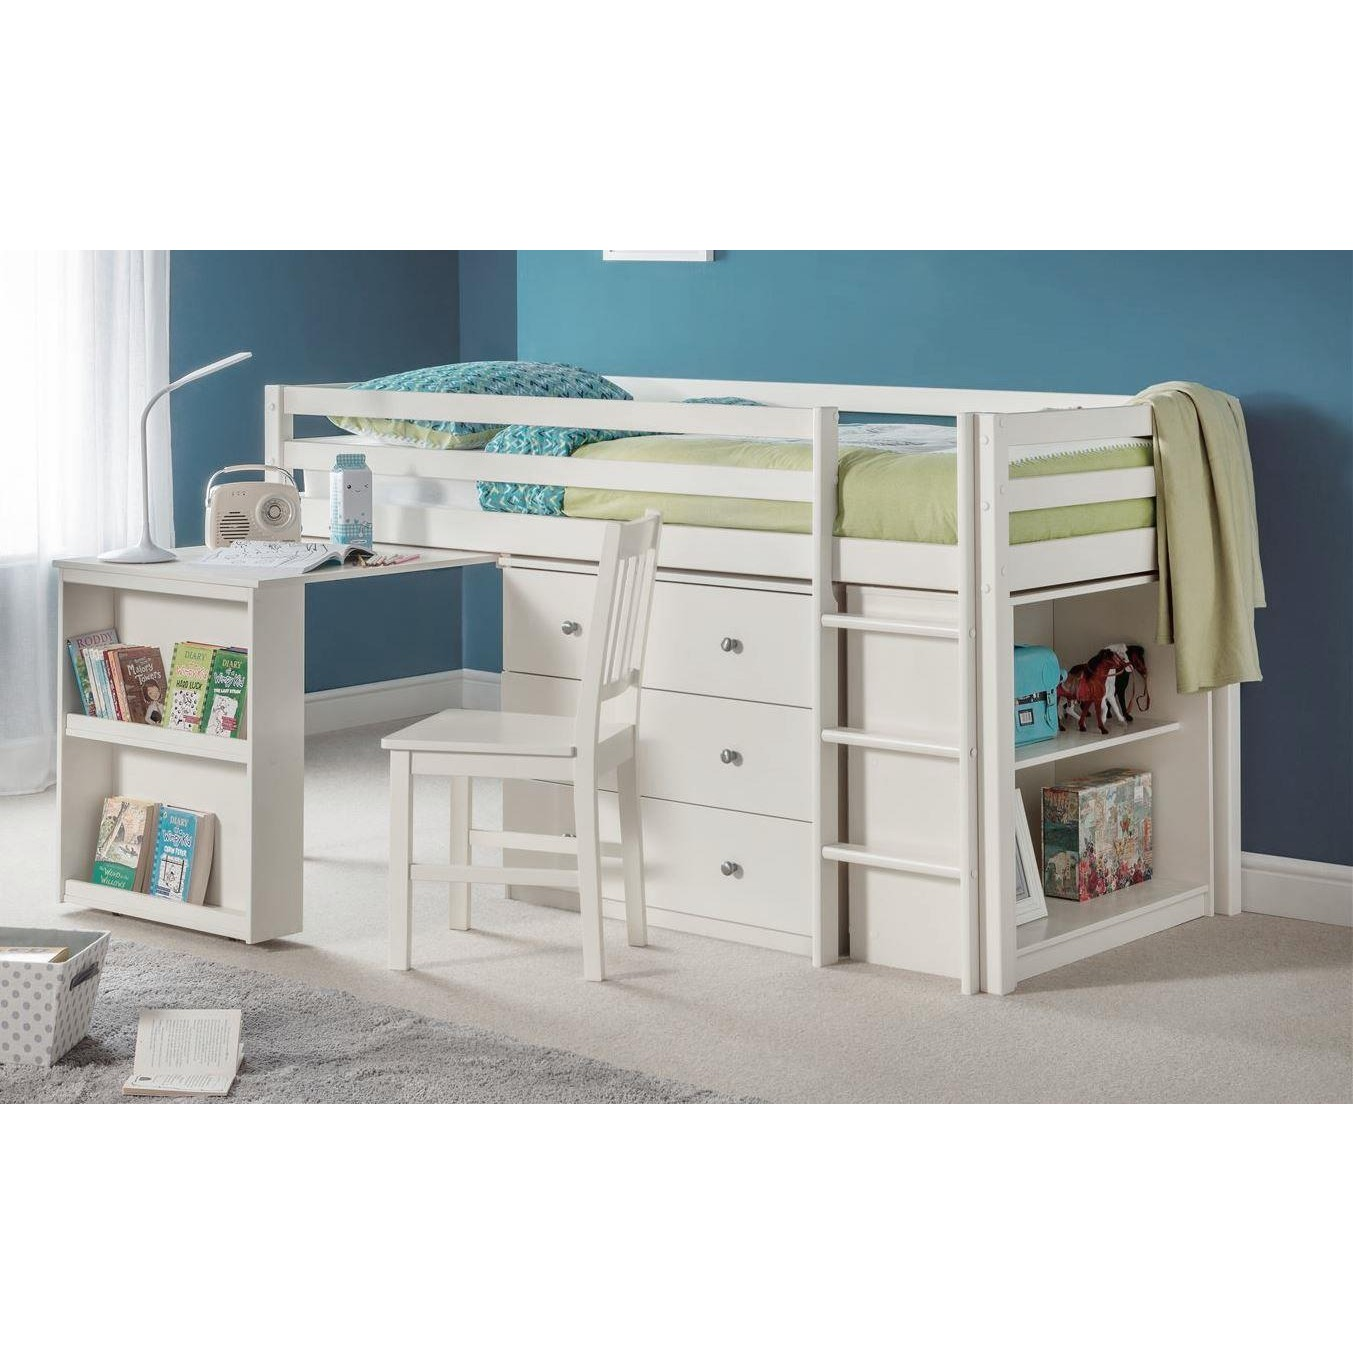 Modern Home Roxy Sleepstation White Free Next Day Delivery